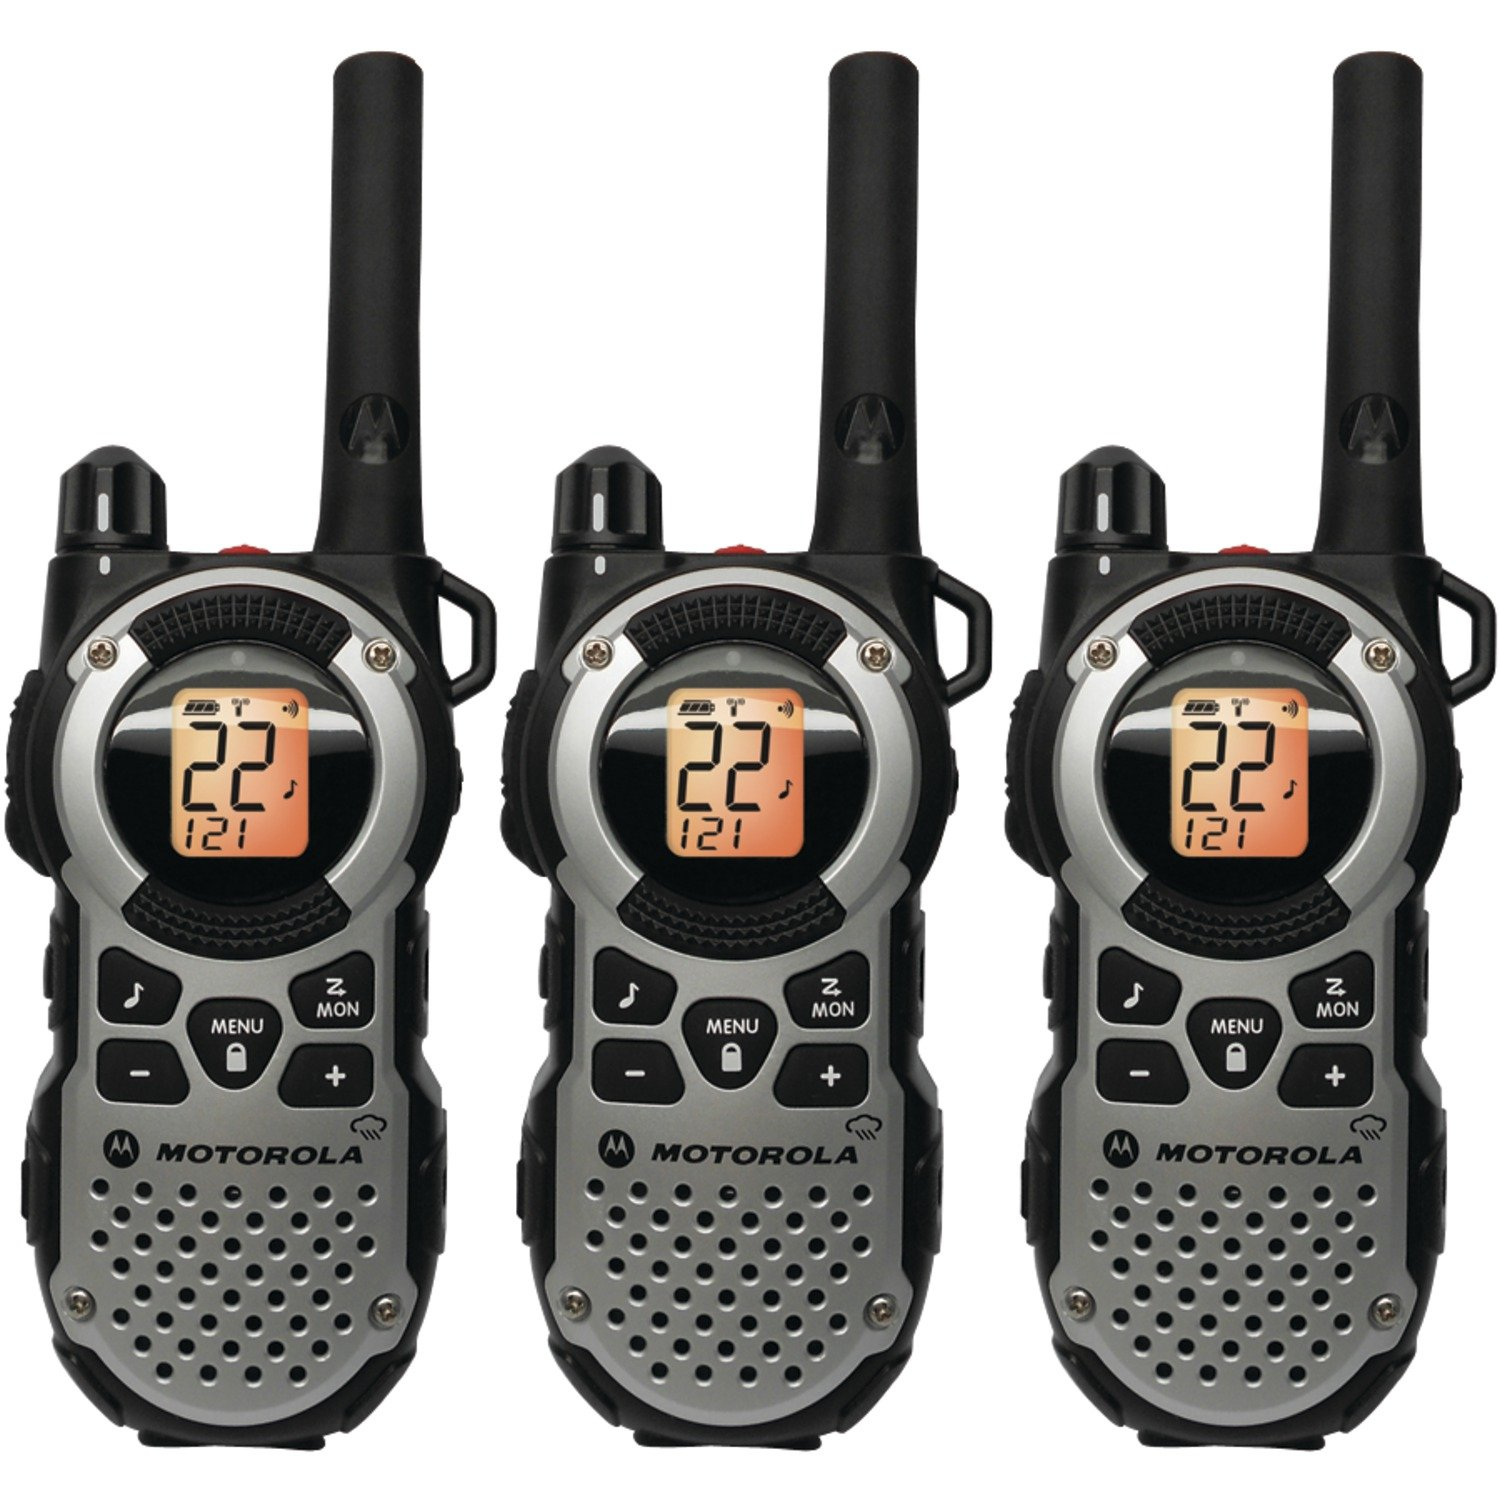 Motorola-MT352TPR-FRS-Weatherproof-Two-Way-35-Mile-Radio-Triple-Pack-Silver